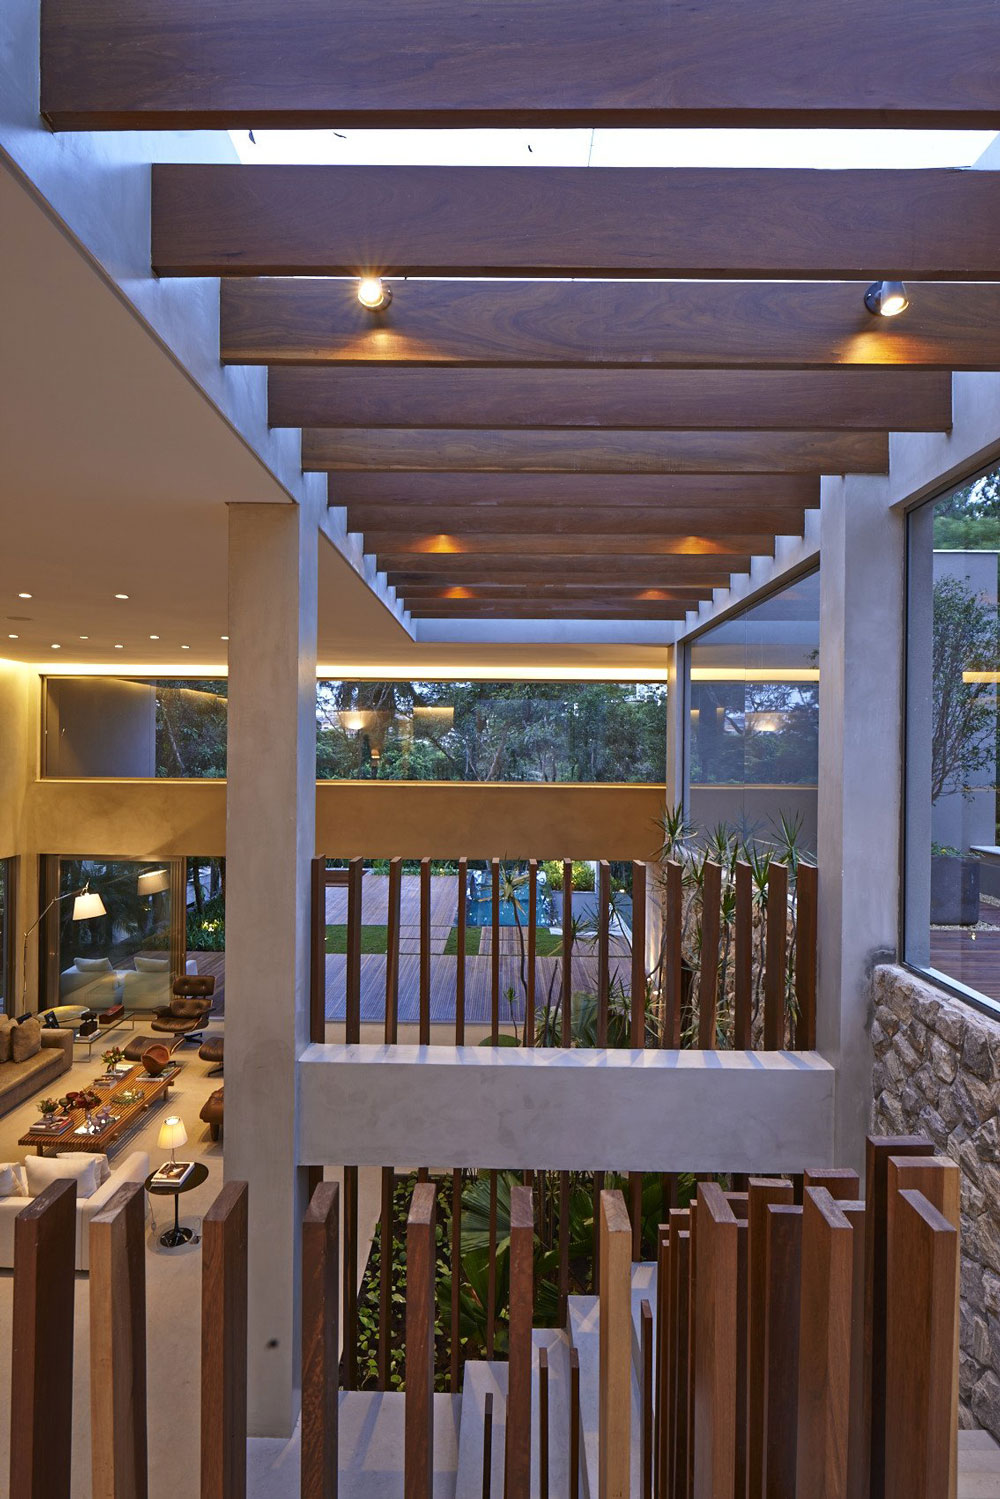 Wood & Concrete Stairs, Contemporary Home in Nova Lima, Brazil